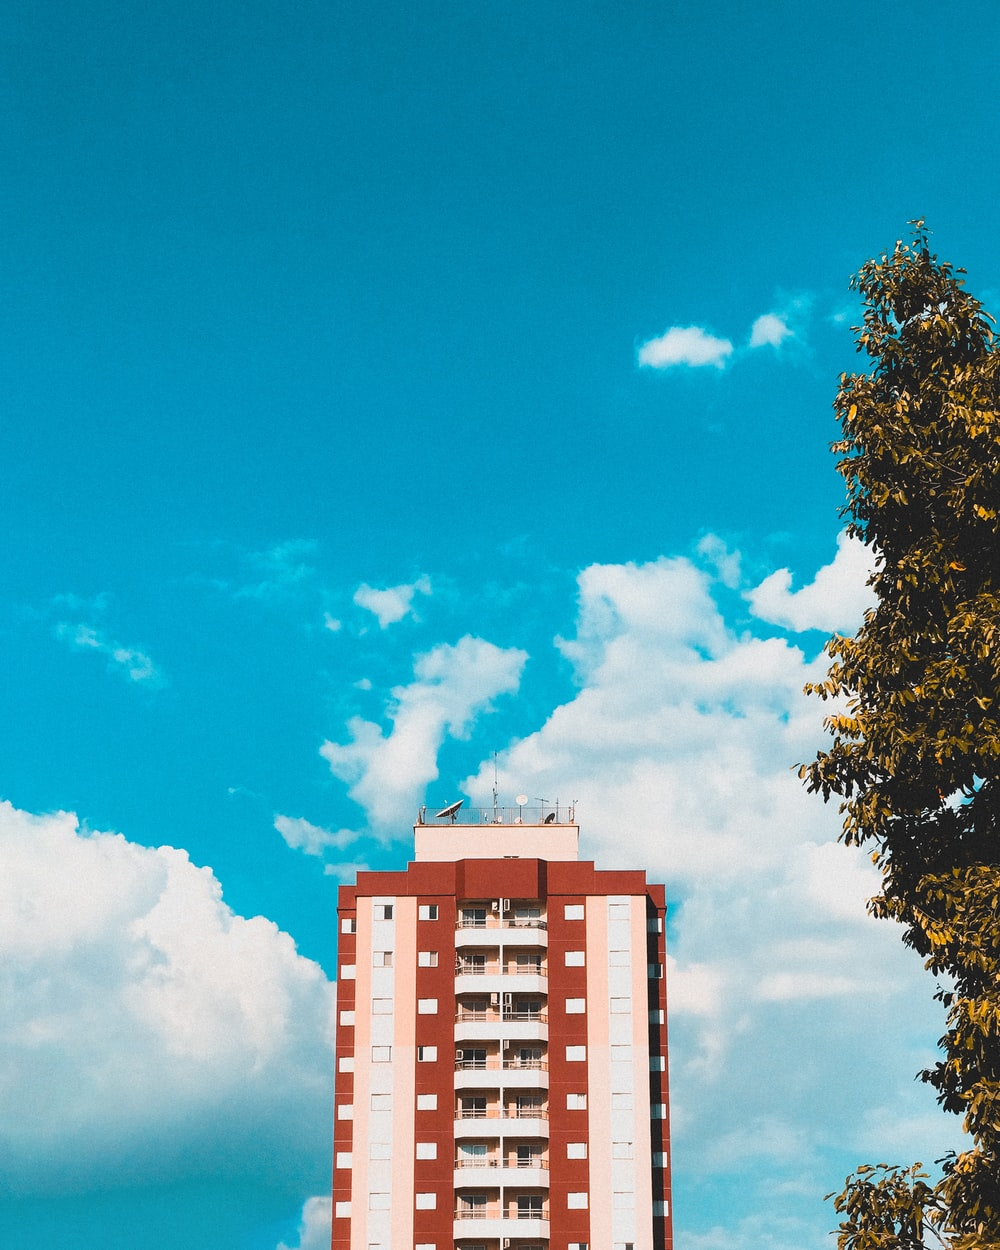 top view of red and white building under blue cloudy sky